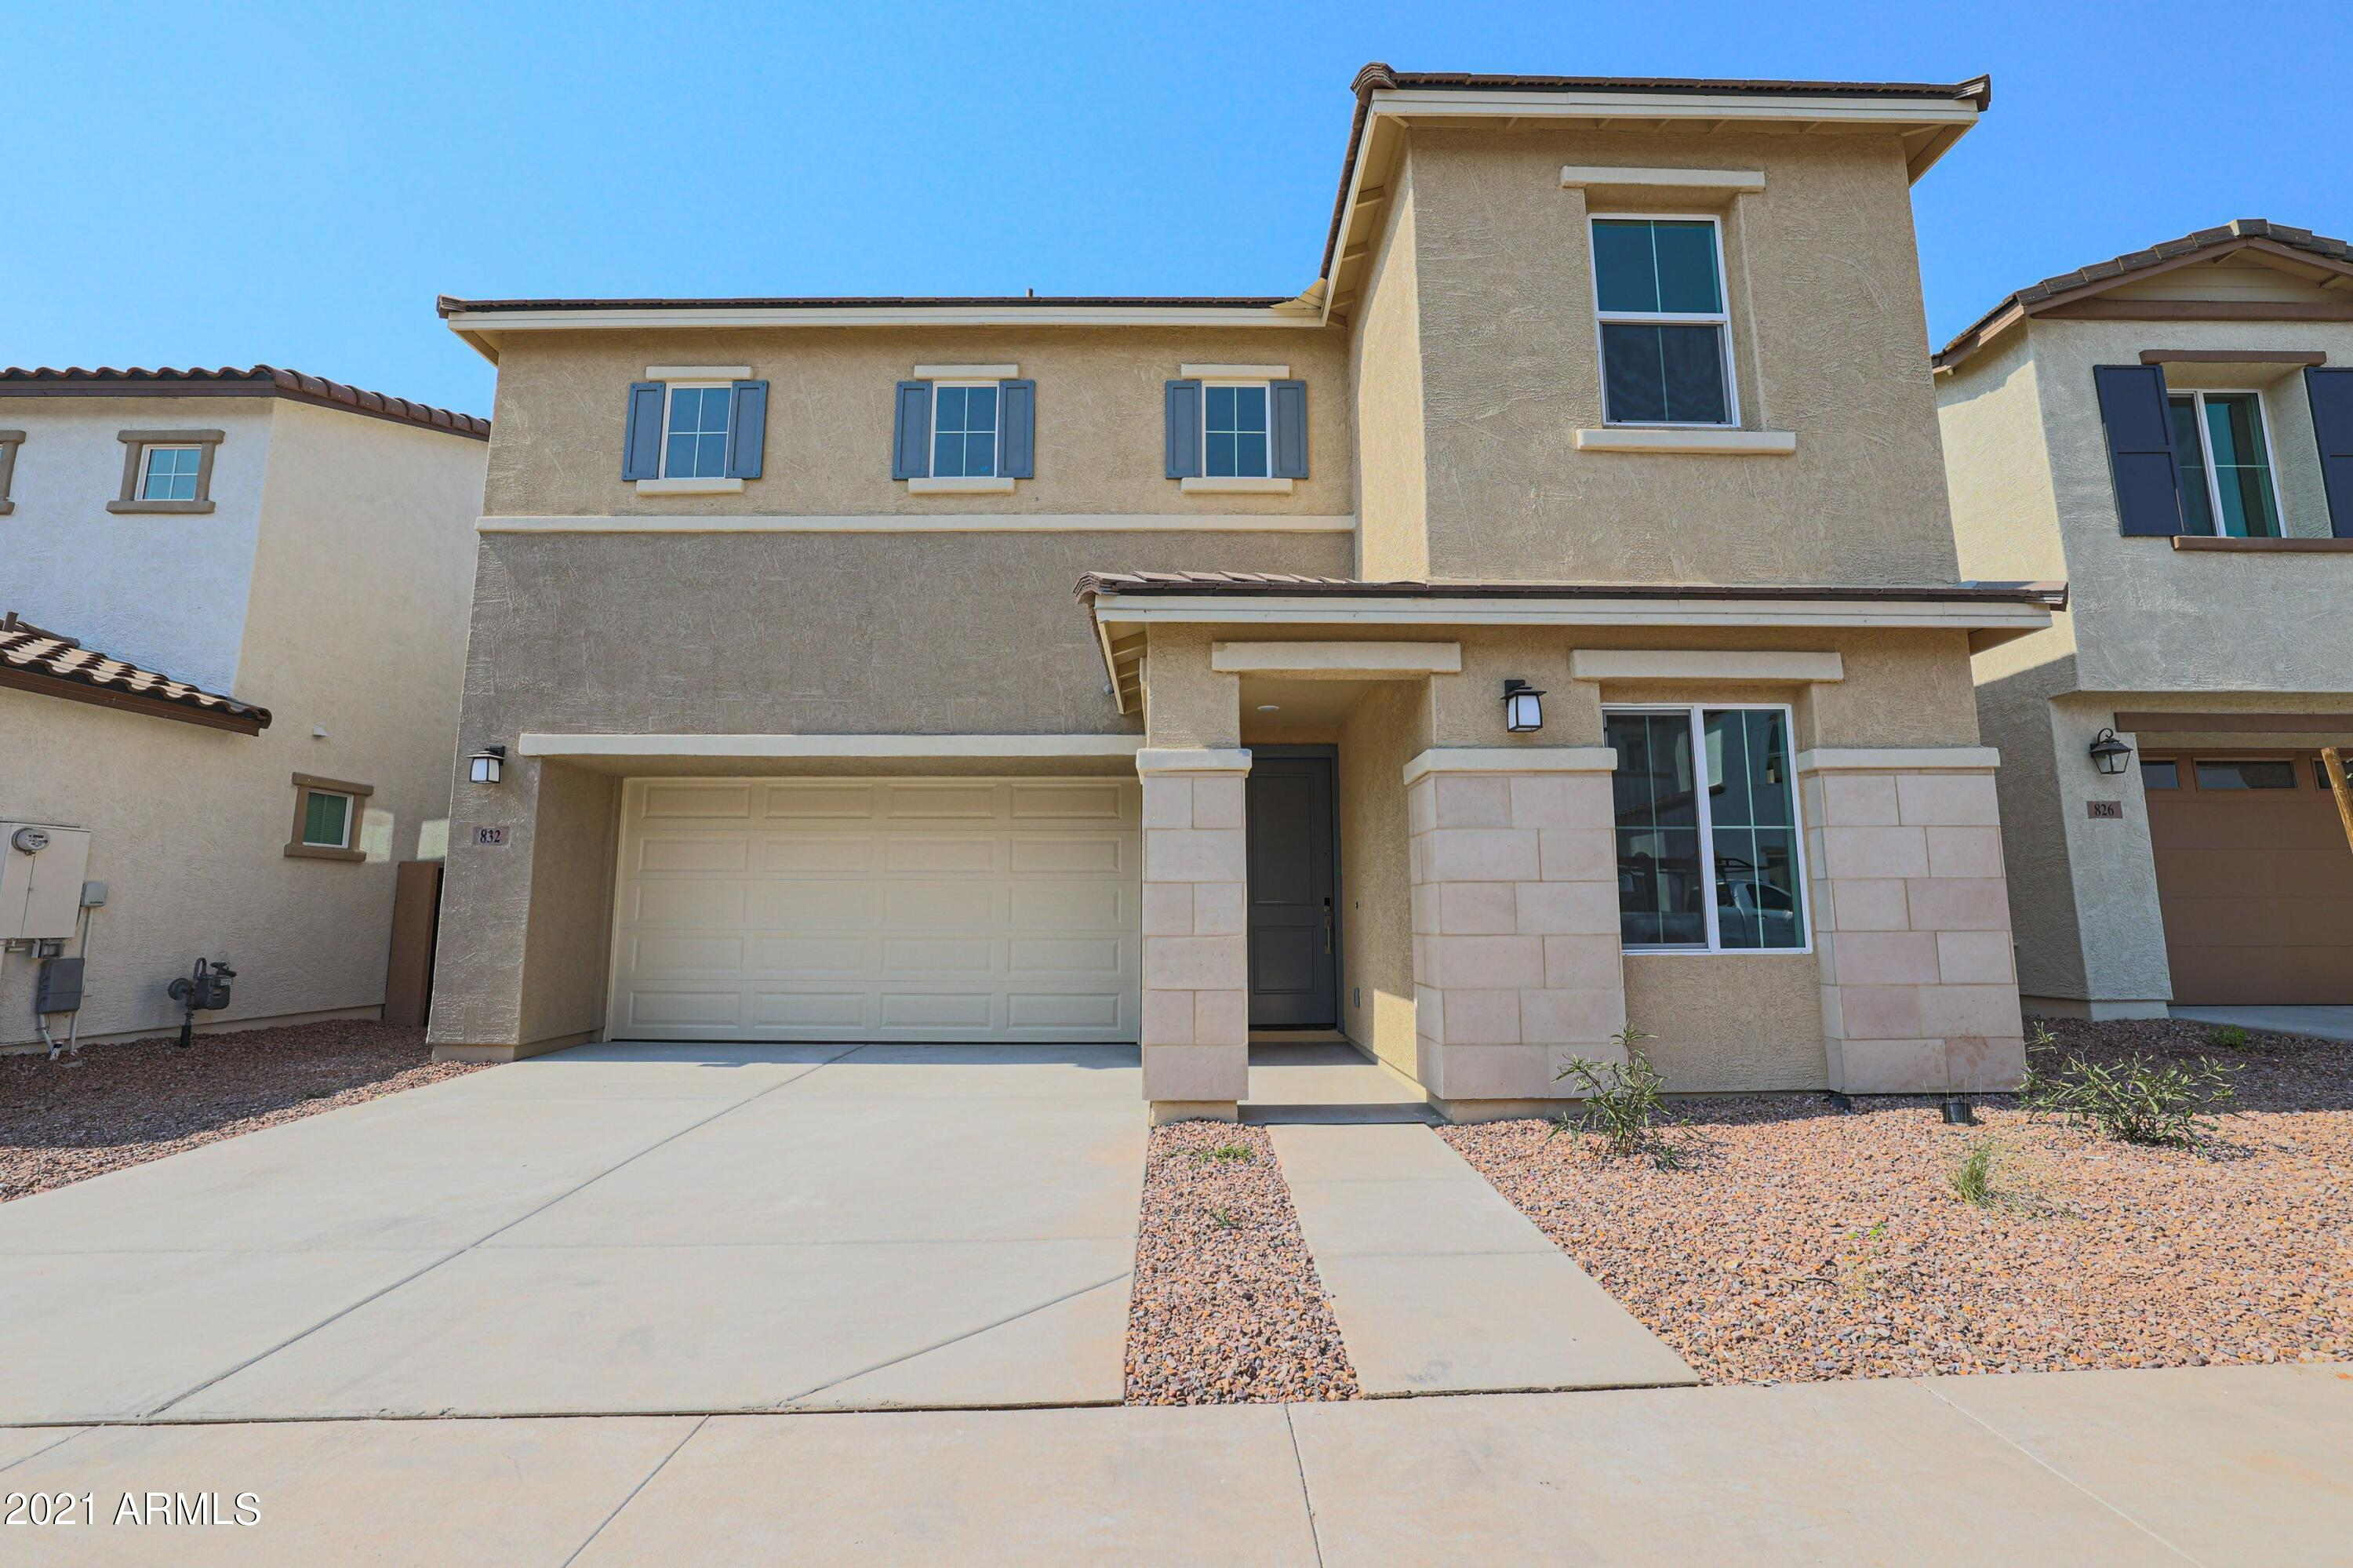 Residential For Sale Chandler